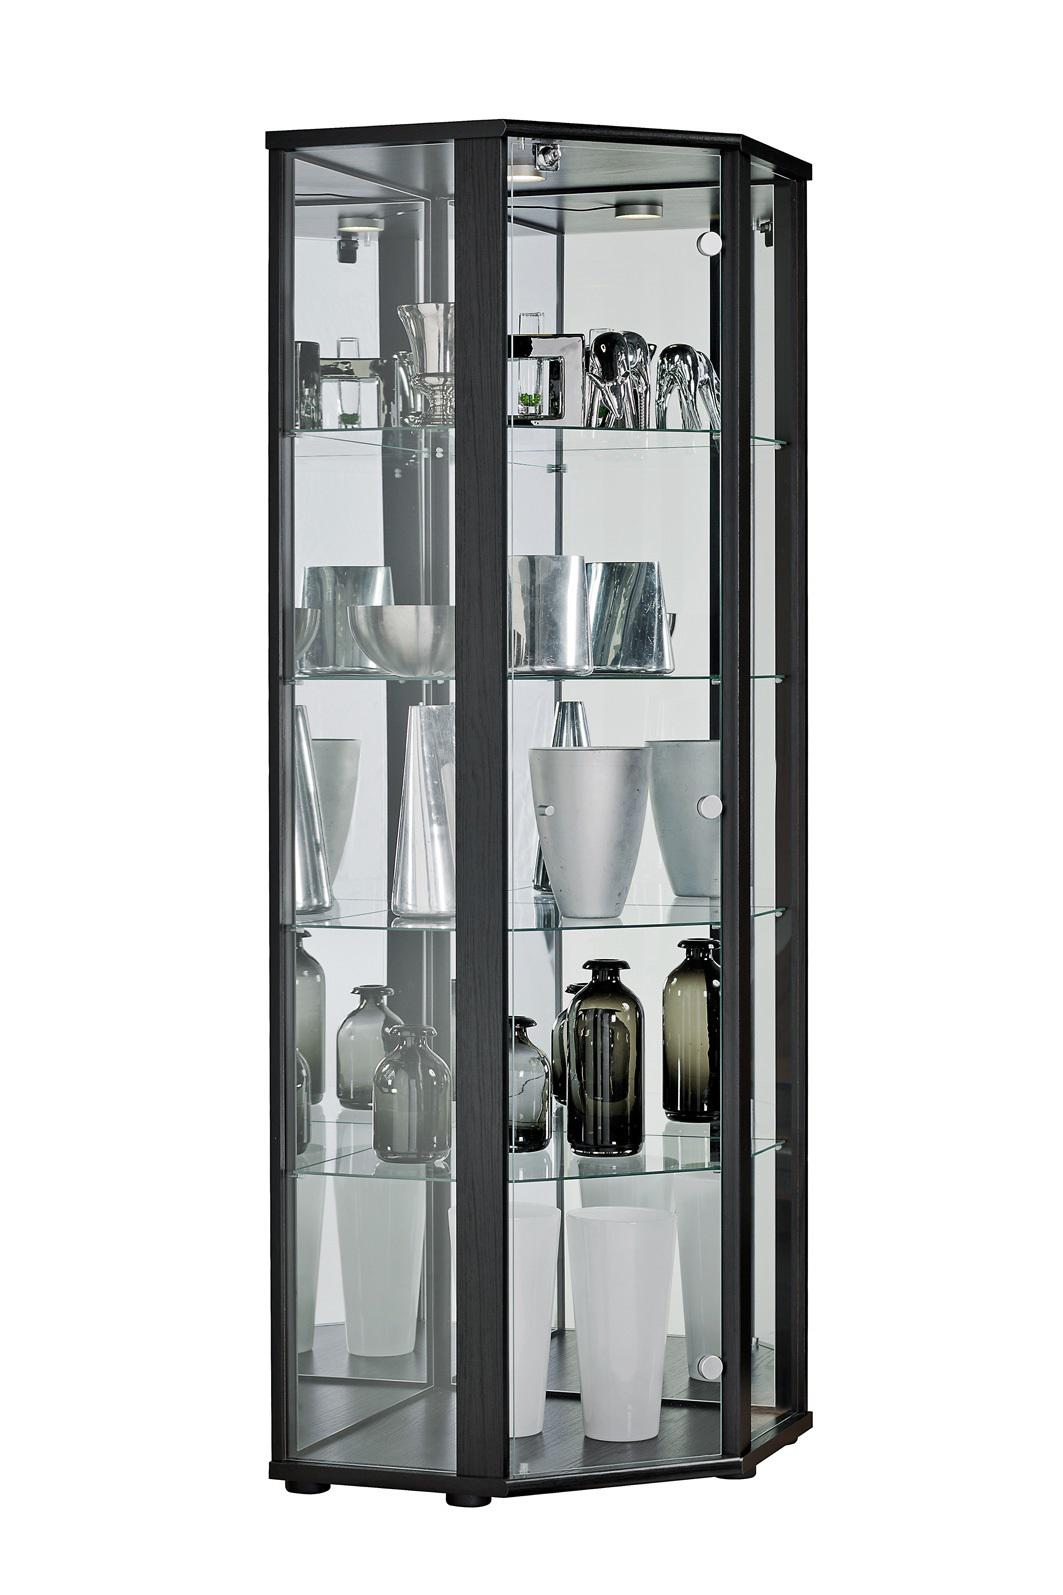 glasvitrine sammelvitrine eckvitrine vitrine led. Black Bedroom Furniture Sets. Home Design Ideas